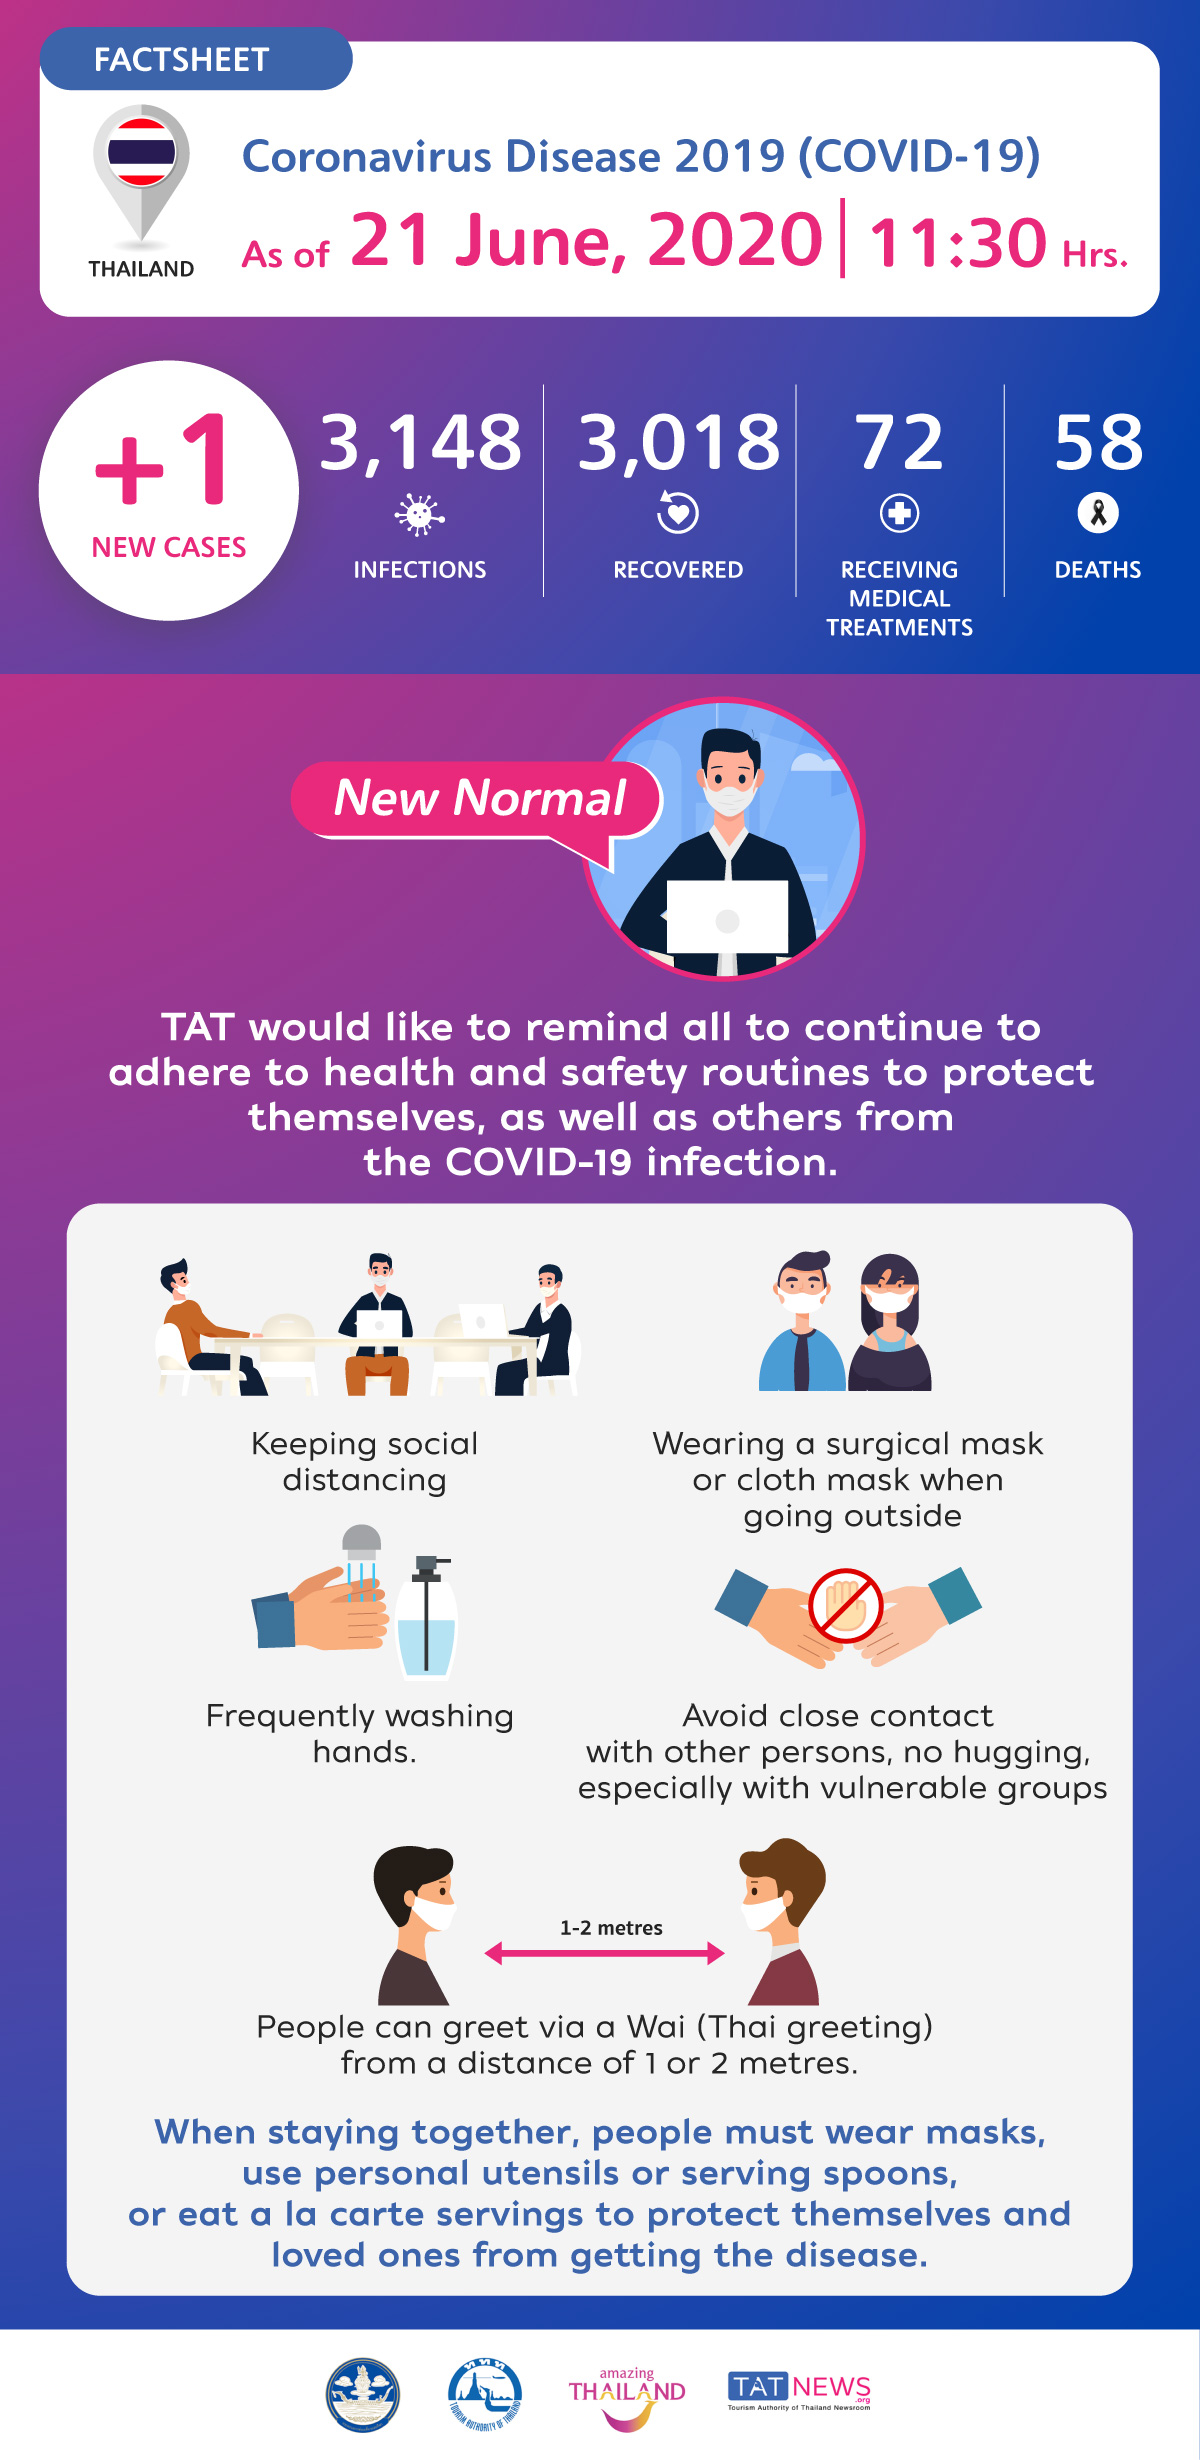 Coronavirus Disease 2019 (COVID-19) situation in Thailand as of 21 June 2020, 11.30 Hrs.